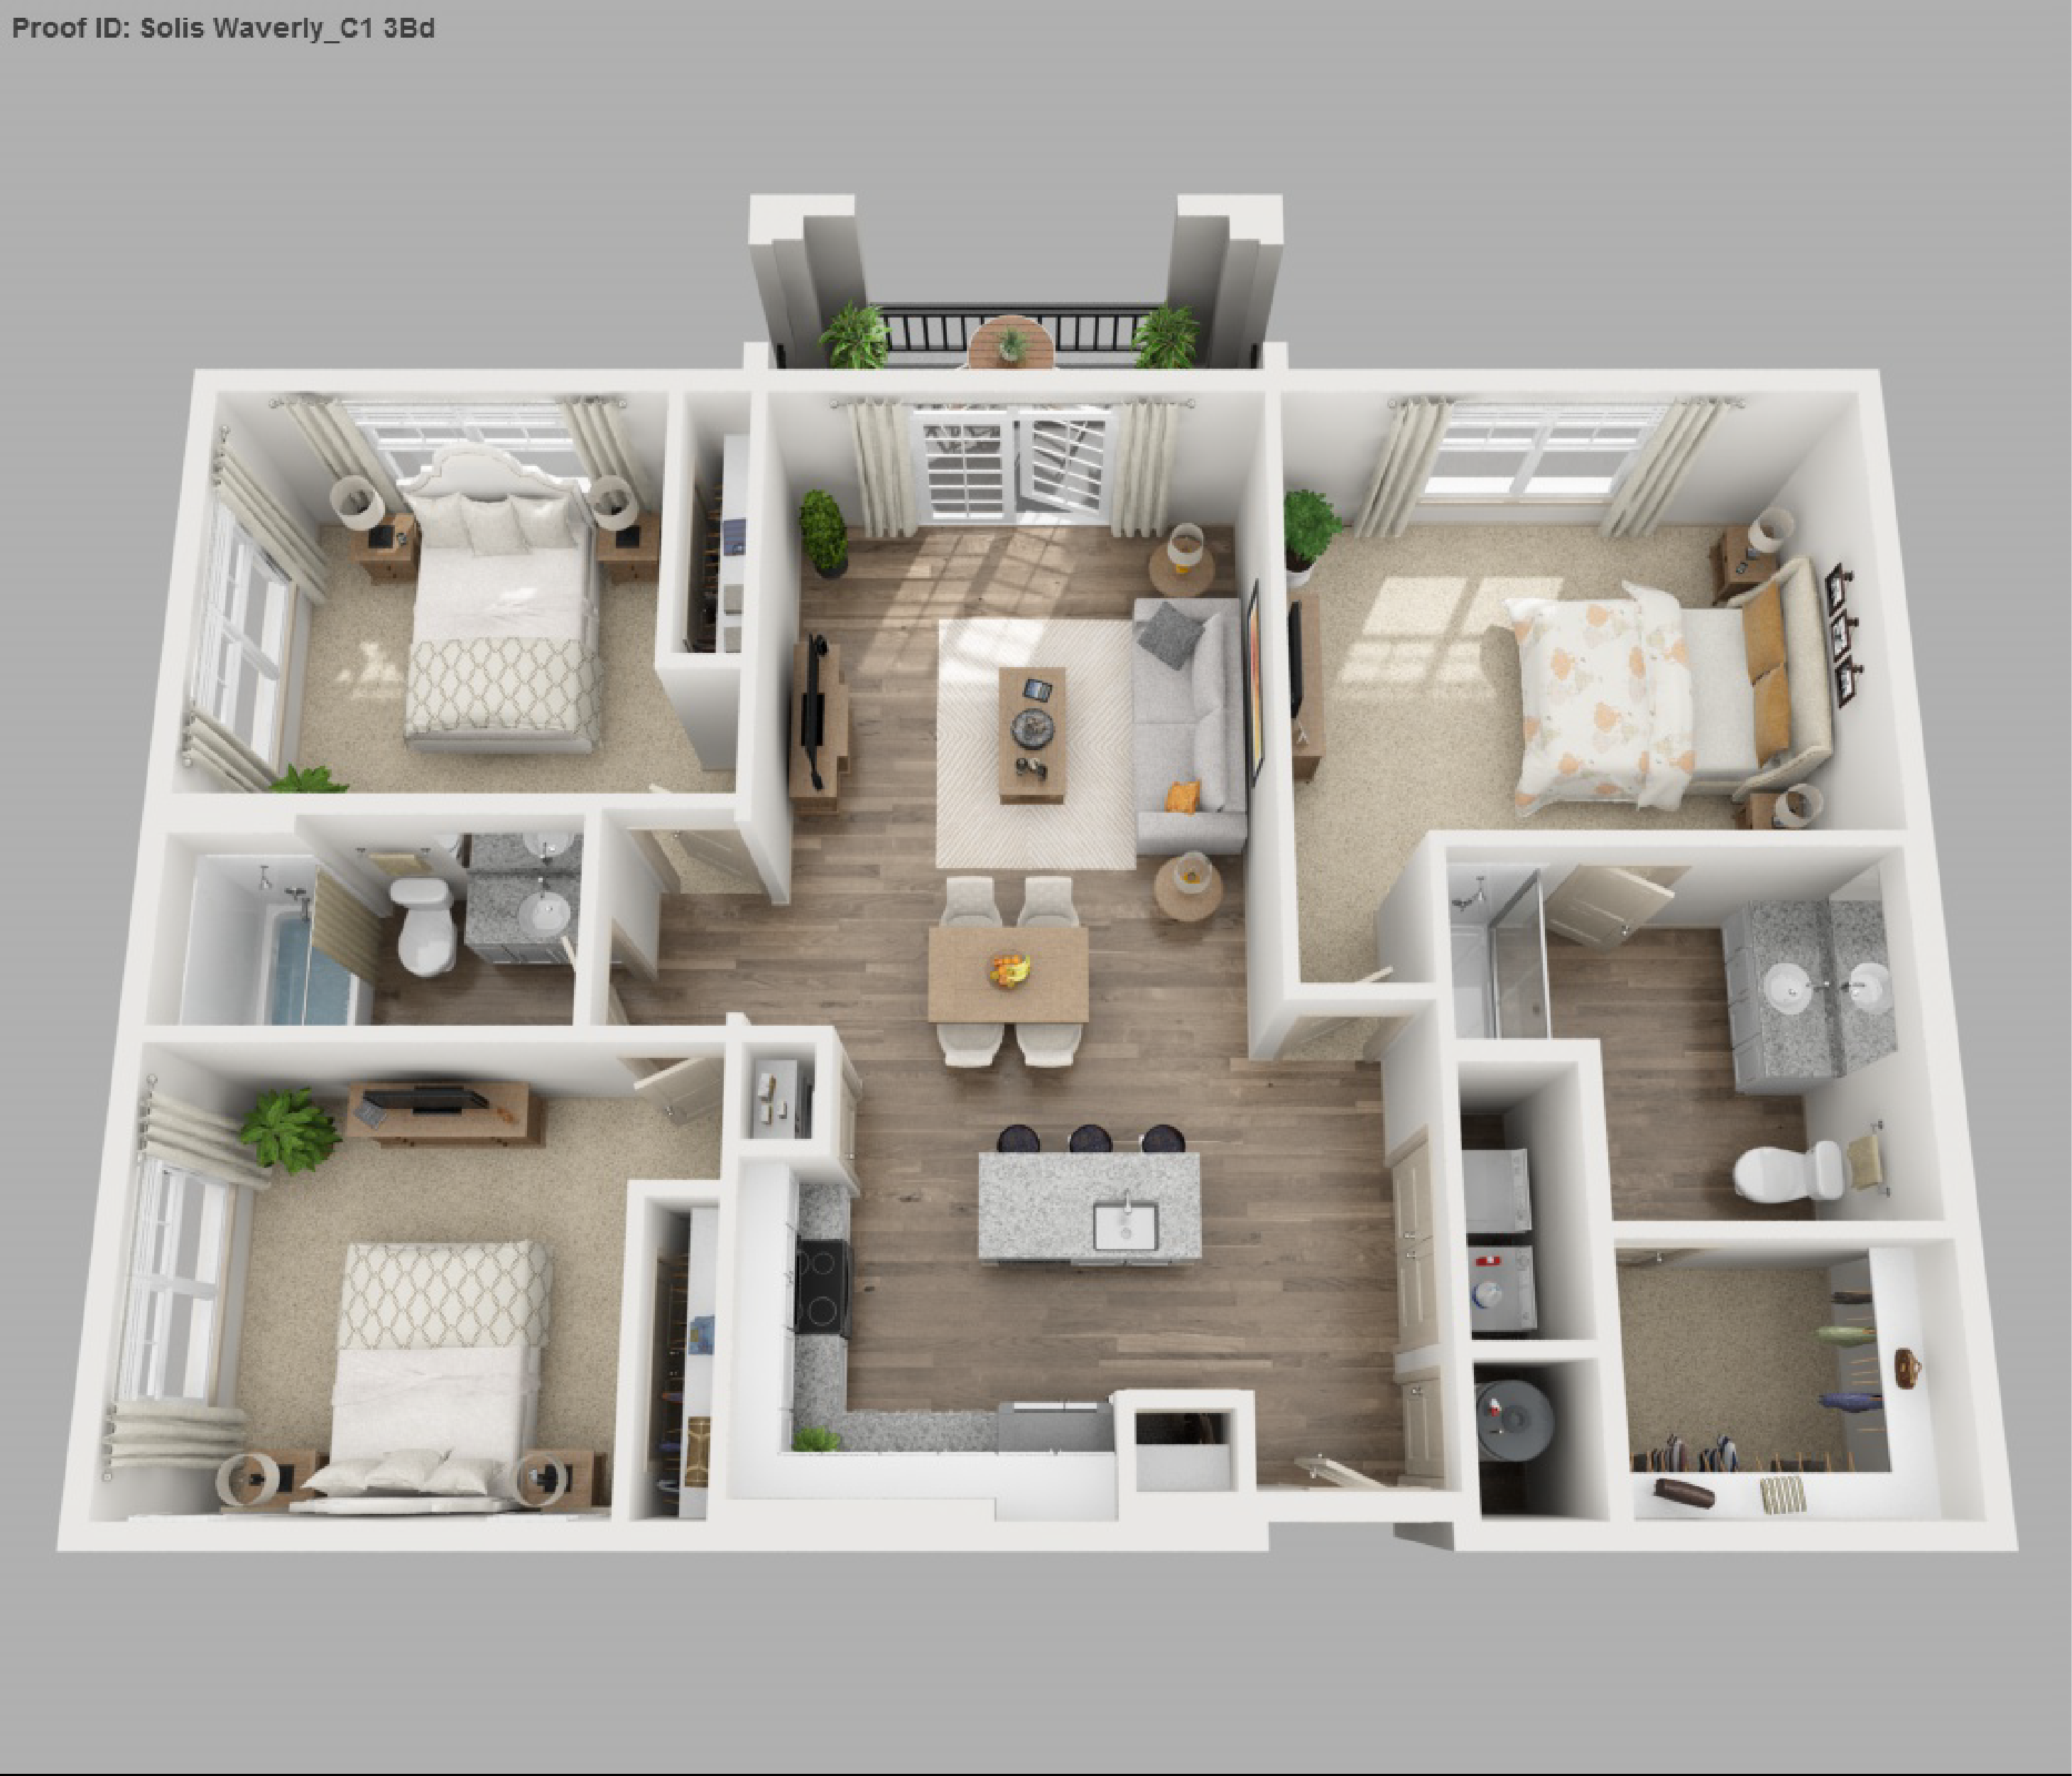 Solis apartments floorplans waverly - House of three bedrooms plan ...